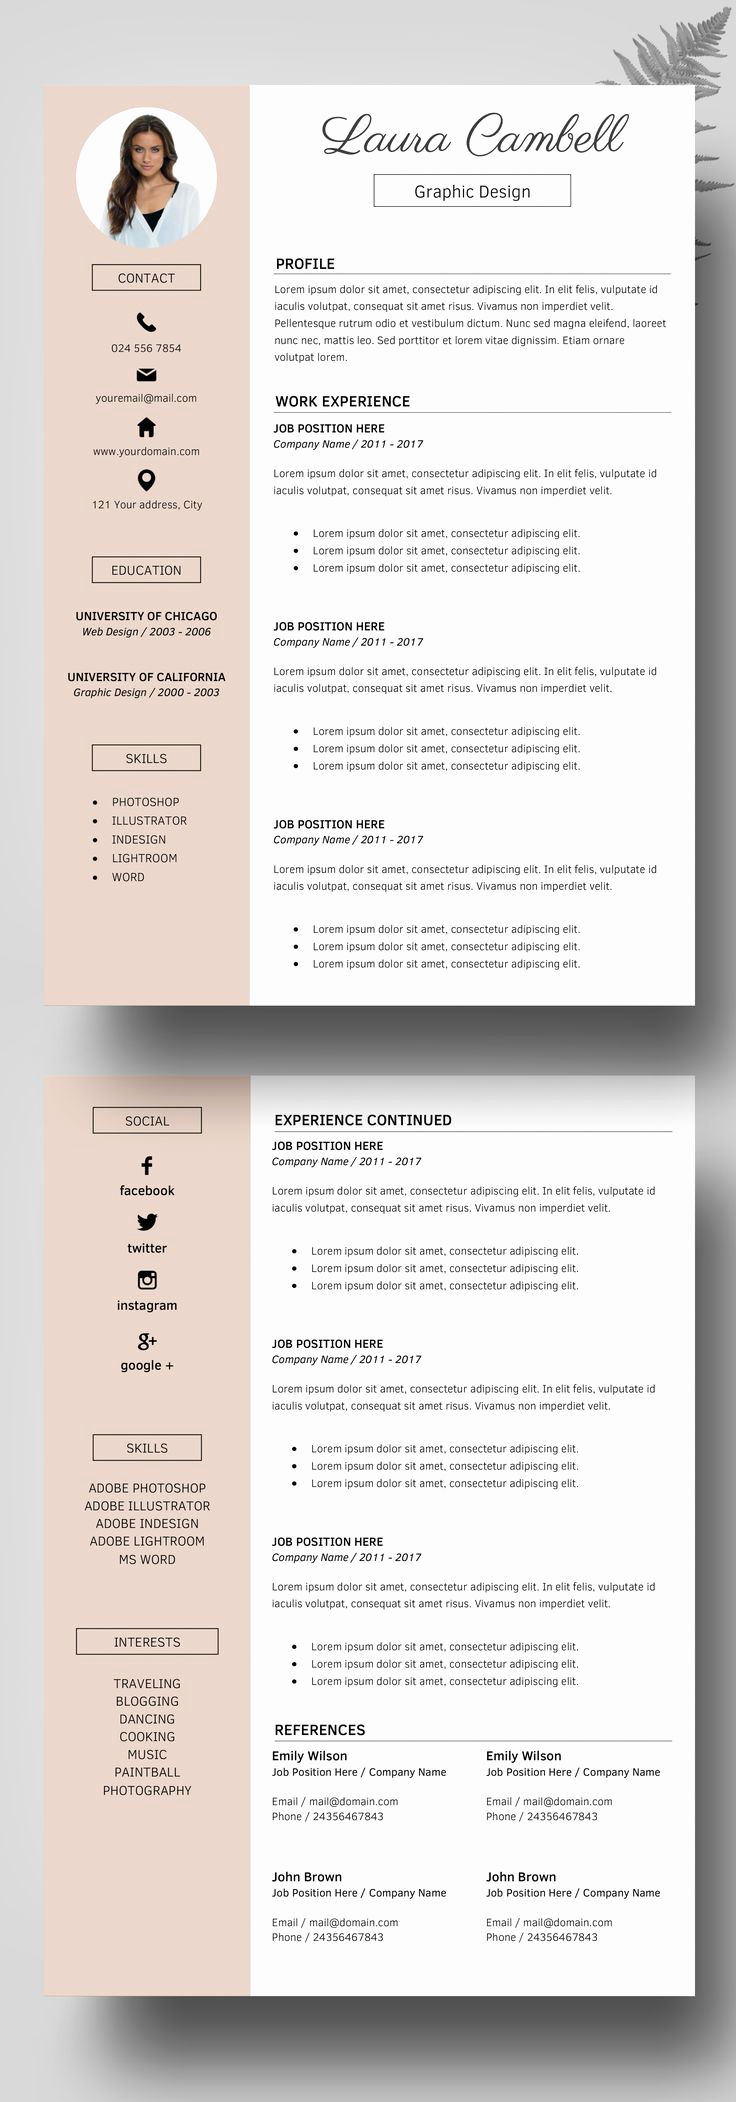 Professional Resume Template Free New Best 25 Professional Resume Template Ideas On Pinterest